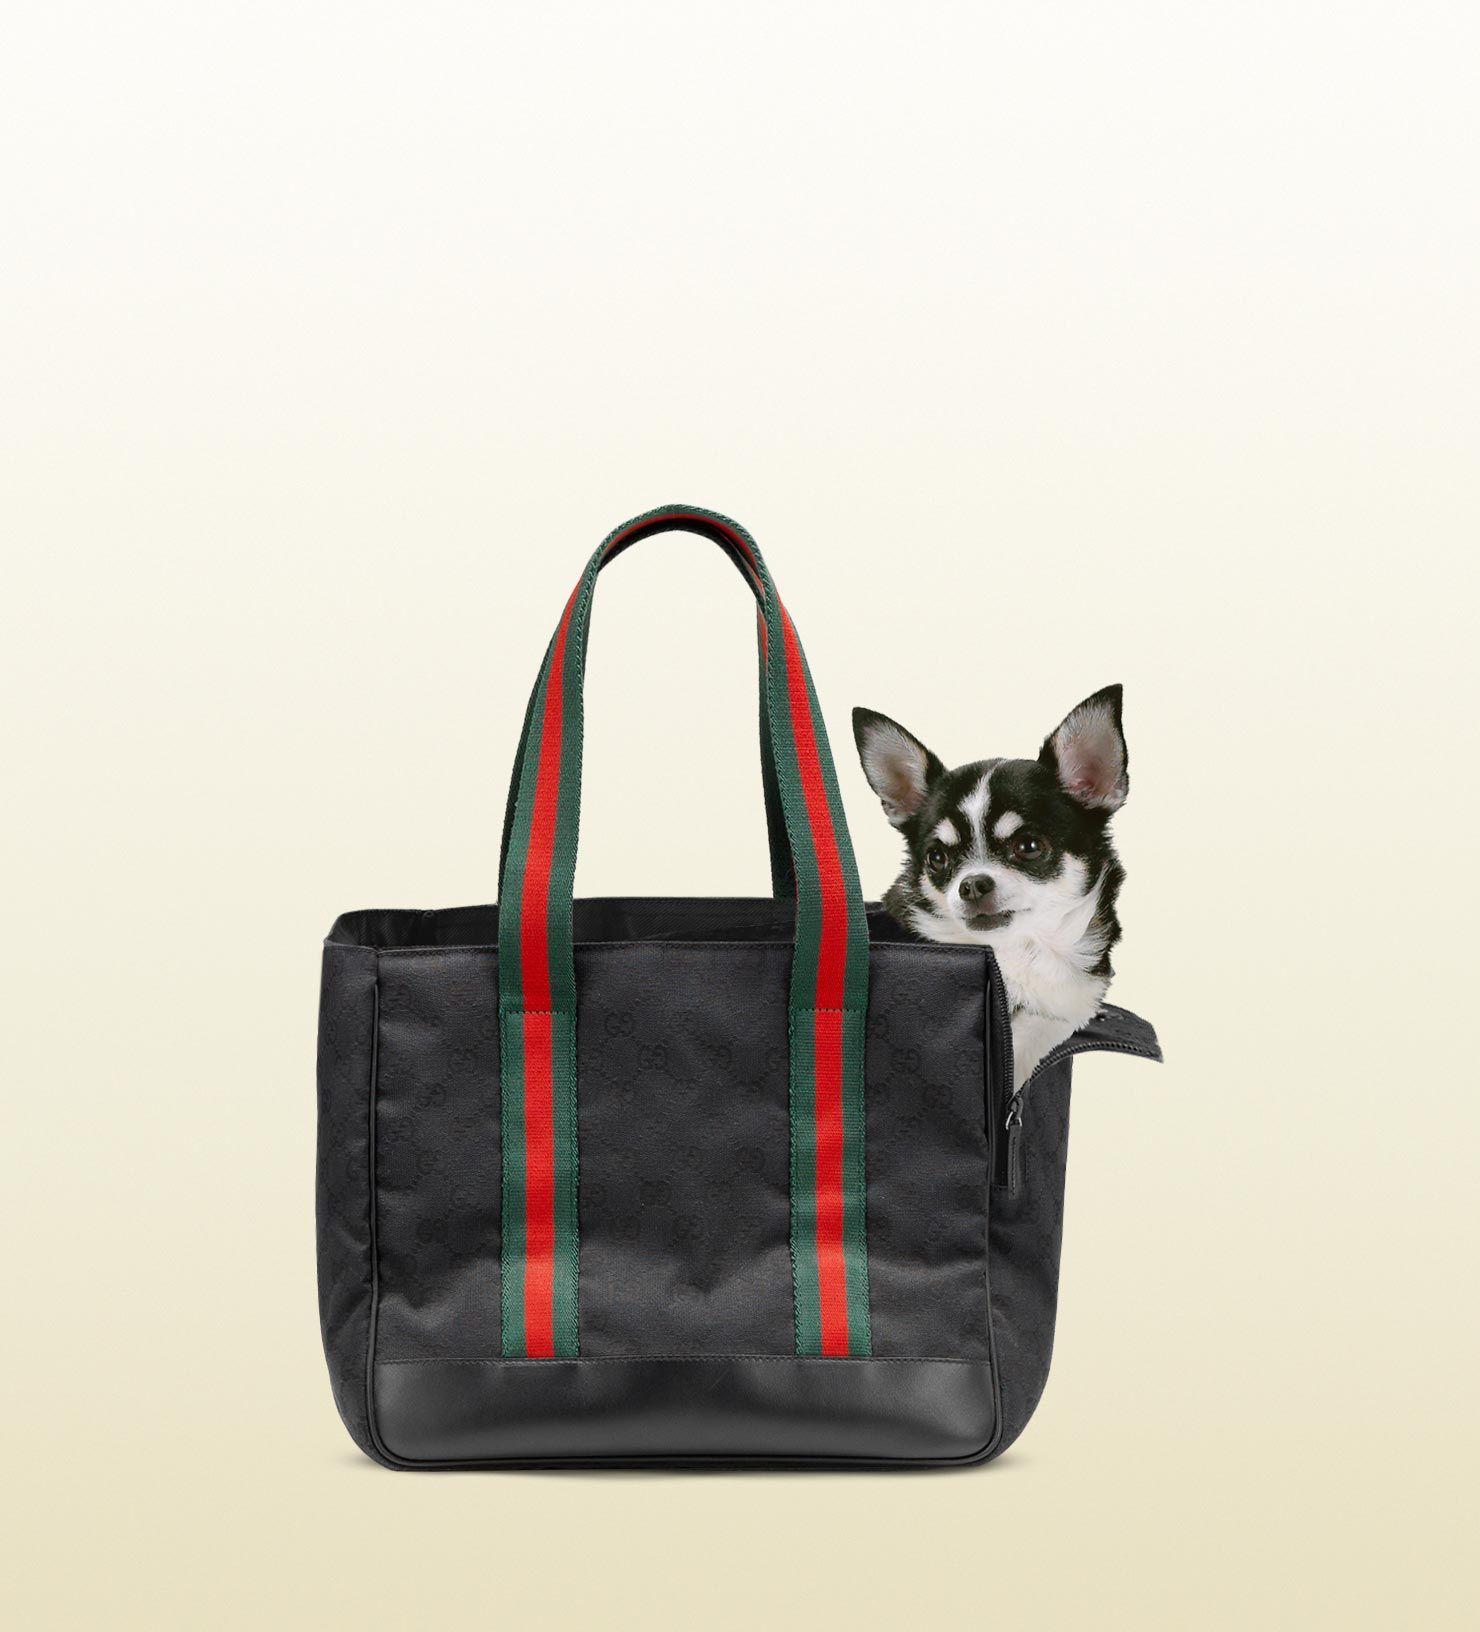 931ff1cea Gucci dog bag.